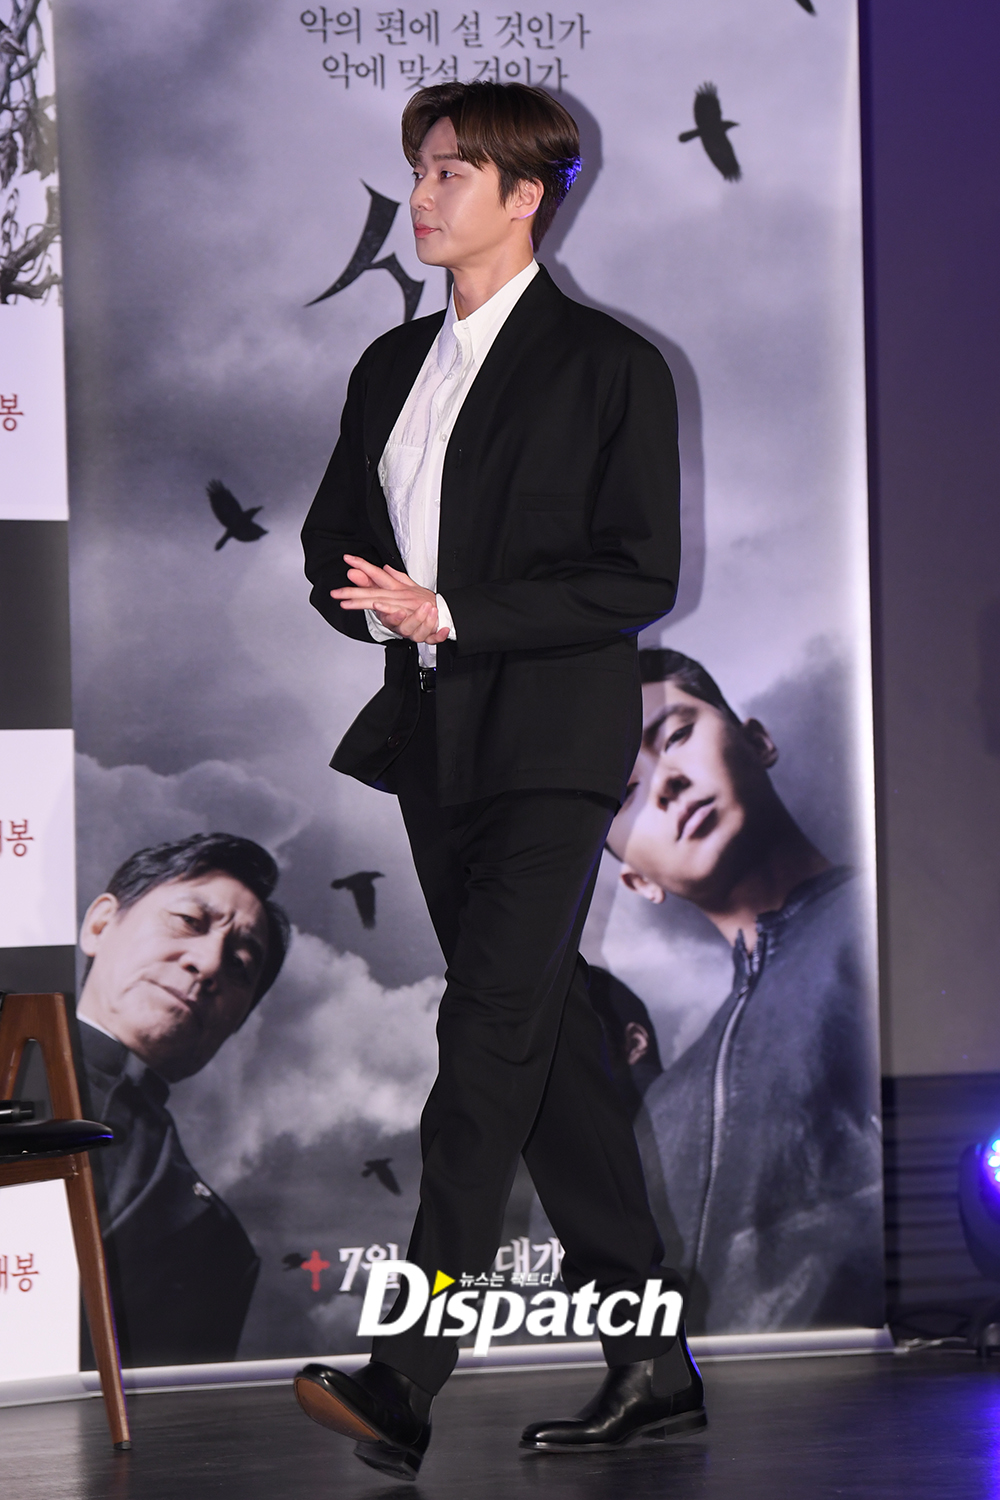 <p> The movie Lion Production report society 26 am Seoul with Lotte Cinema Konkuk is a furniture store in the open.</p><p>Park Seo-joon is a black into Man of fashion, showed off it.</p><p>Meanwhile, the Lionis a Fighting Champion Dragon weather(Park Seo-joon)family, the priest should have some(safe enough)to meet the world into a chaos strong against the evil in the story and action! Within a month of 31 days youre on.</p><p>After the light flashing</p><p>Shining Romance appeared</p>